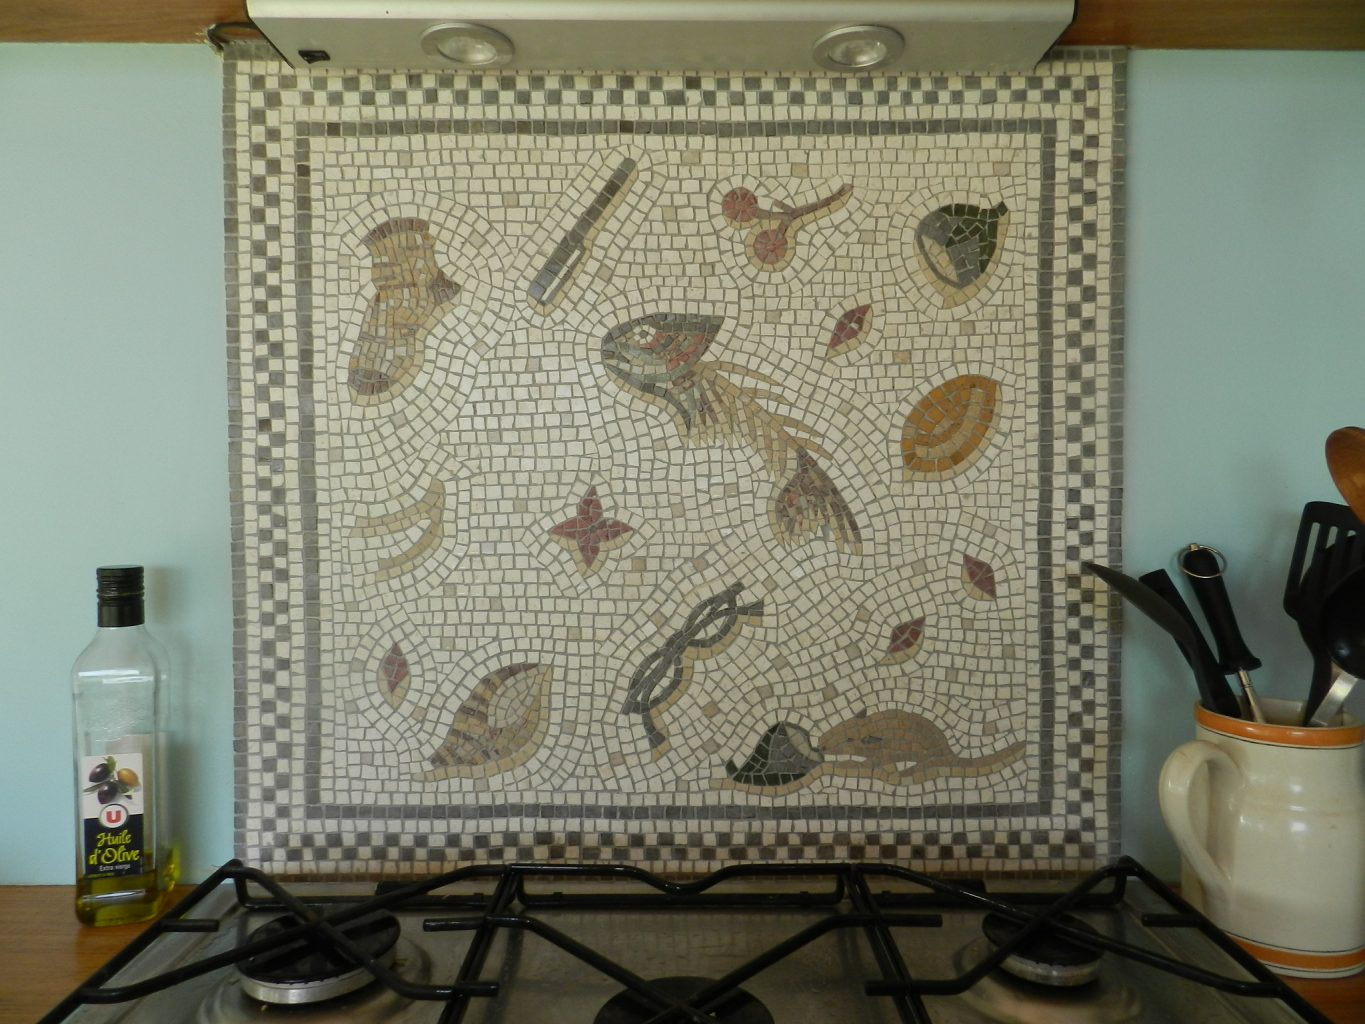 Installing a mosaic splash back in seven easy steps.